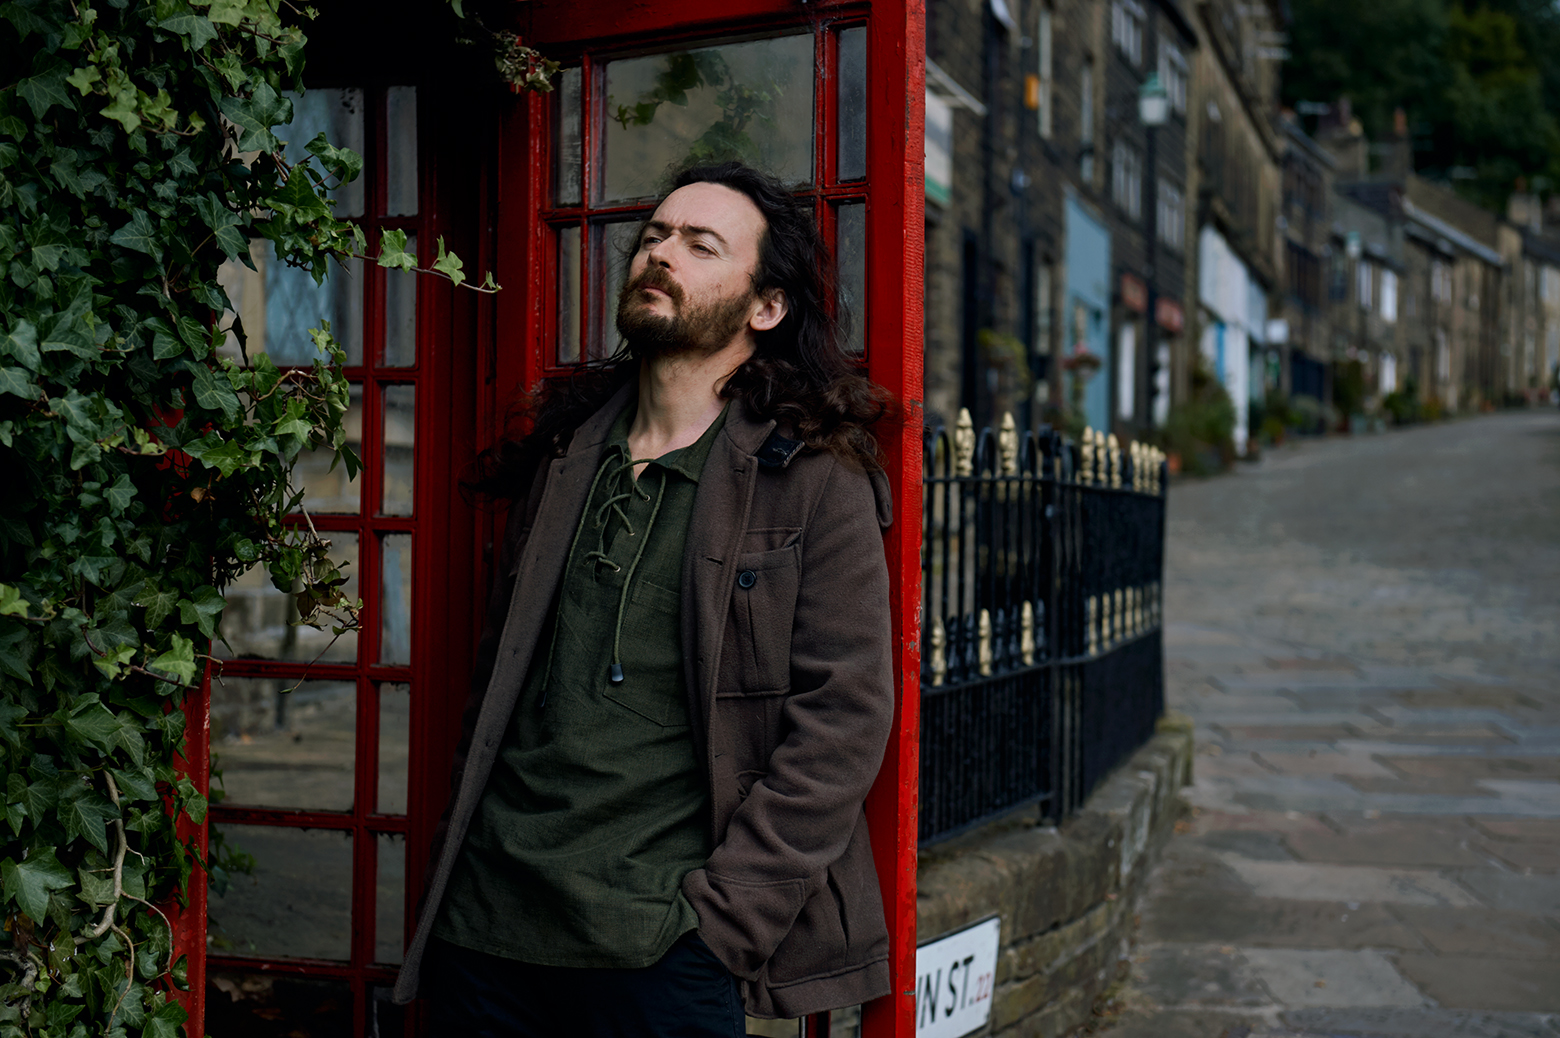 bronte, literature, village, yorkshire, haworth, small, main street, shops, cute, holiday, travel, cobblestone, england, photos and the city, actor, portrait